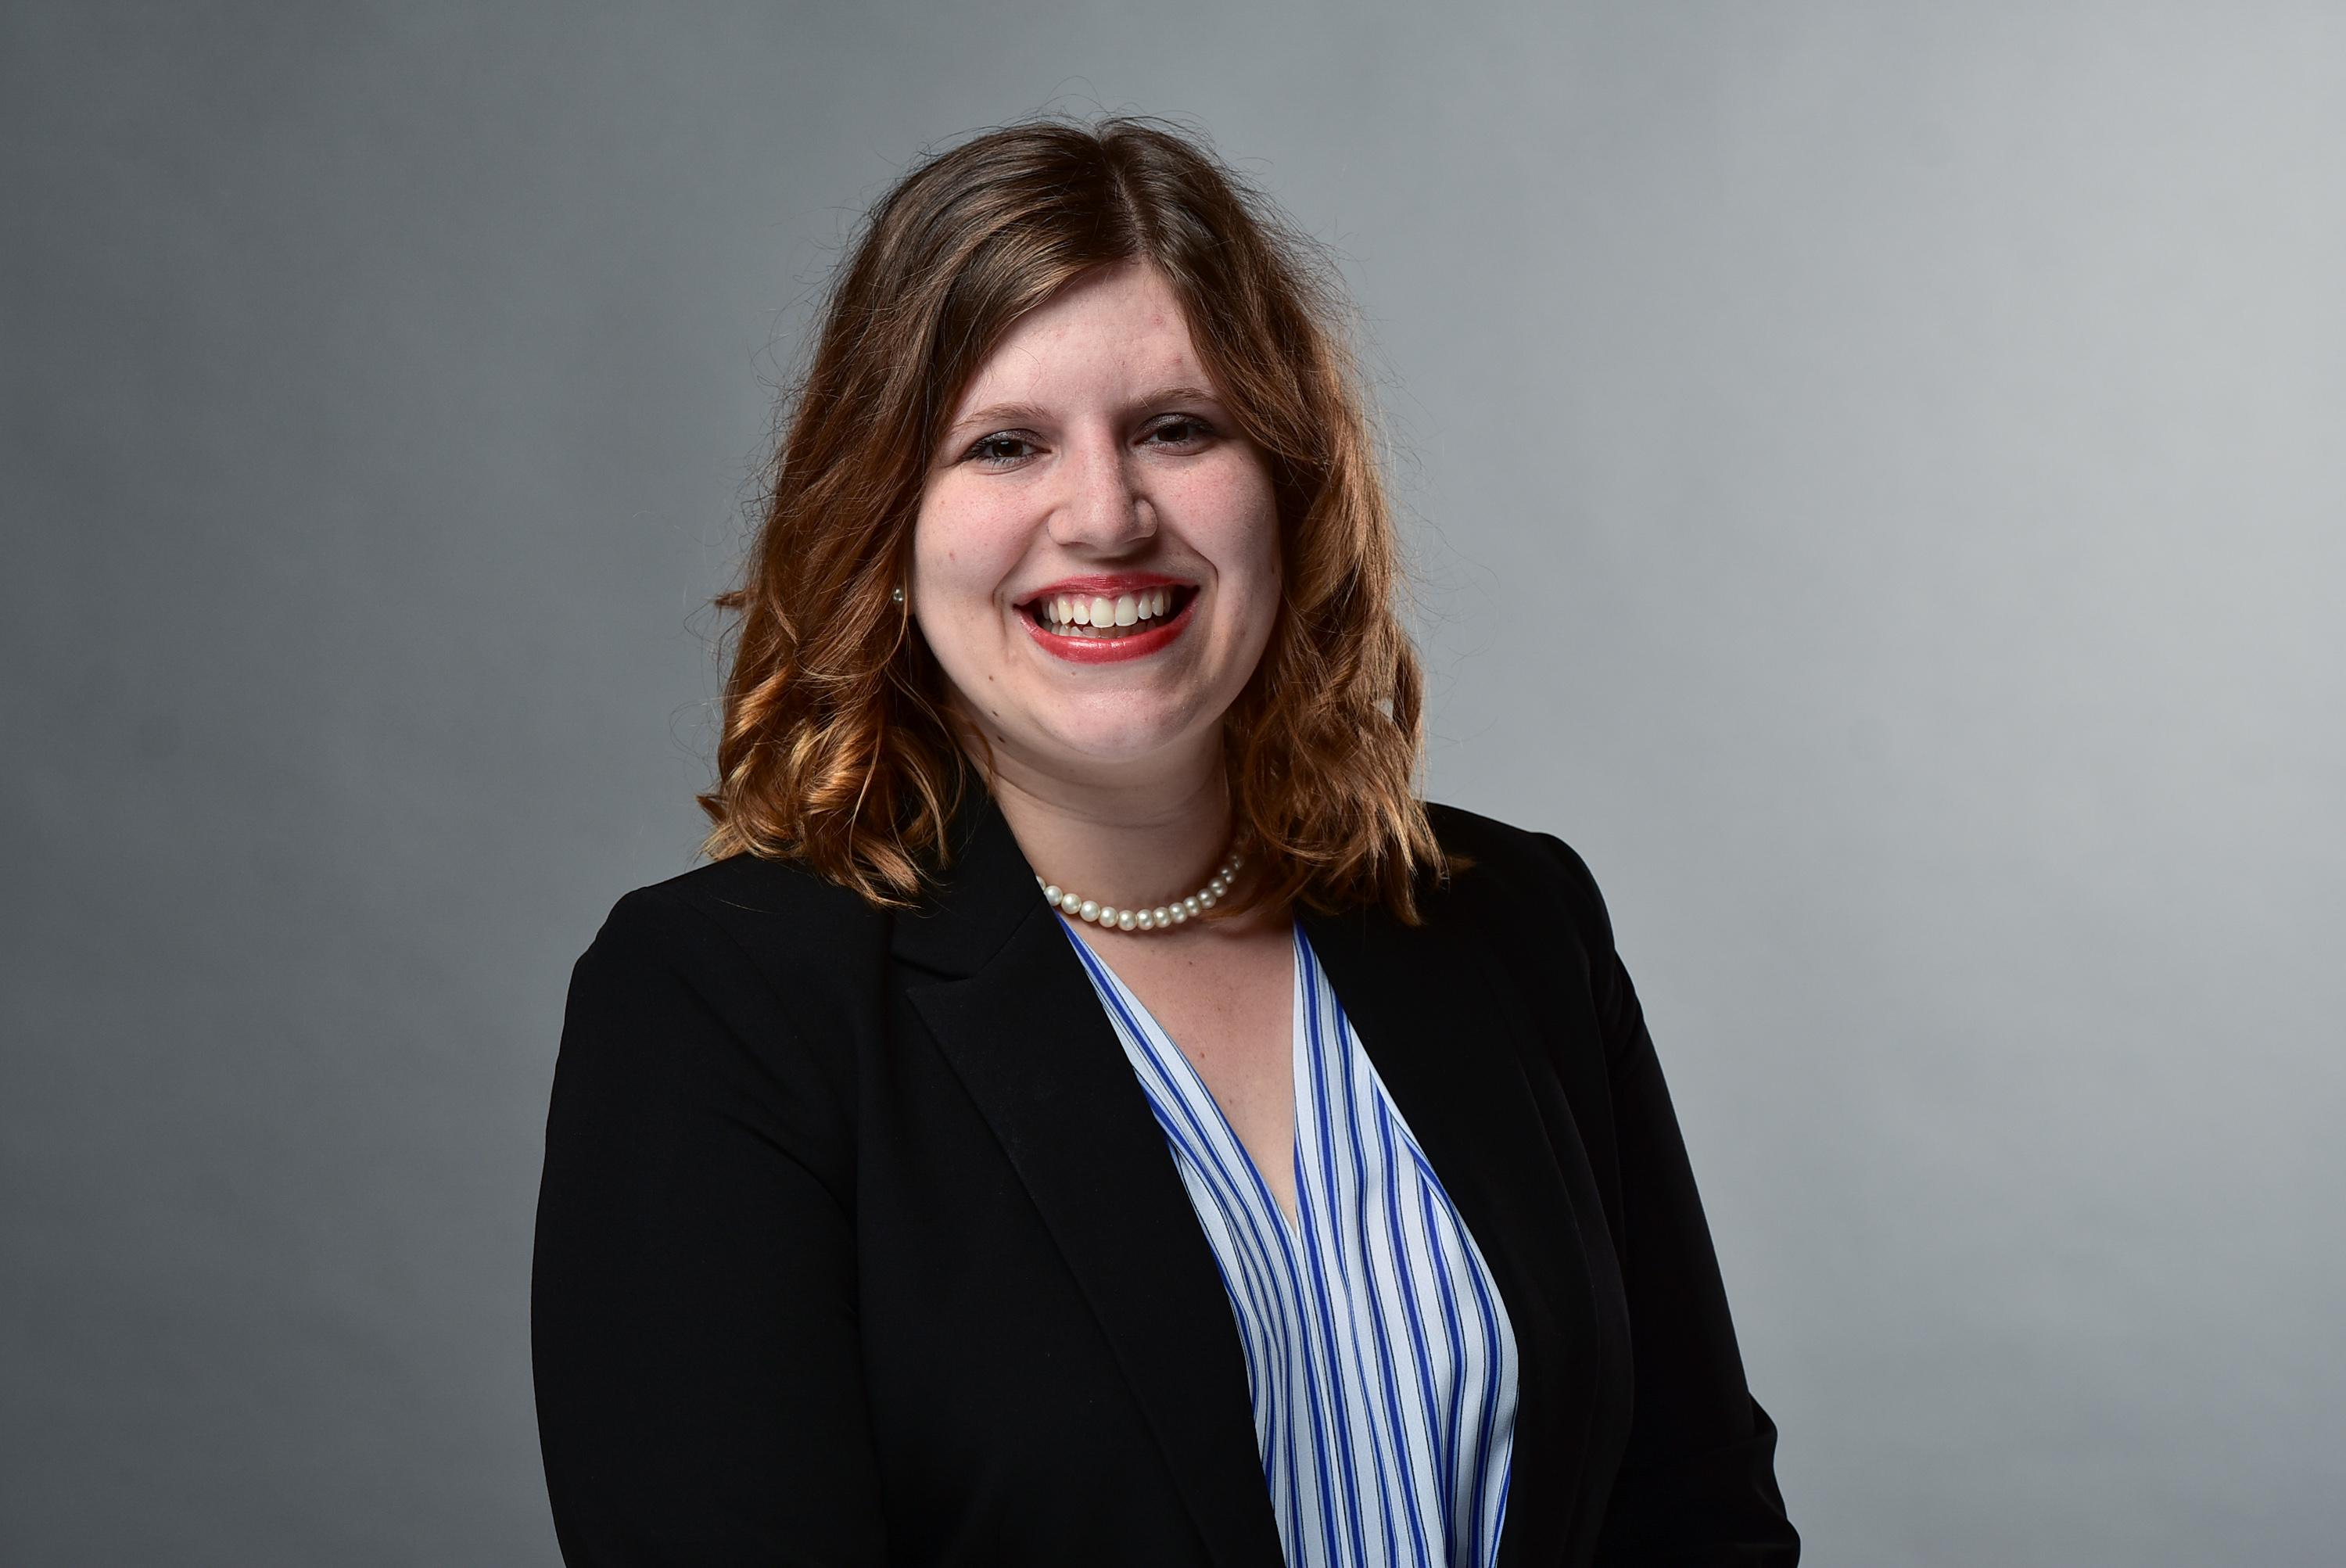 CLAIRE DAMGAARD Financial Professional & Insurance Agent